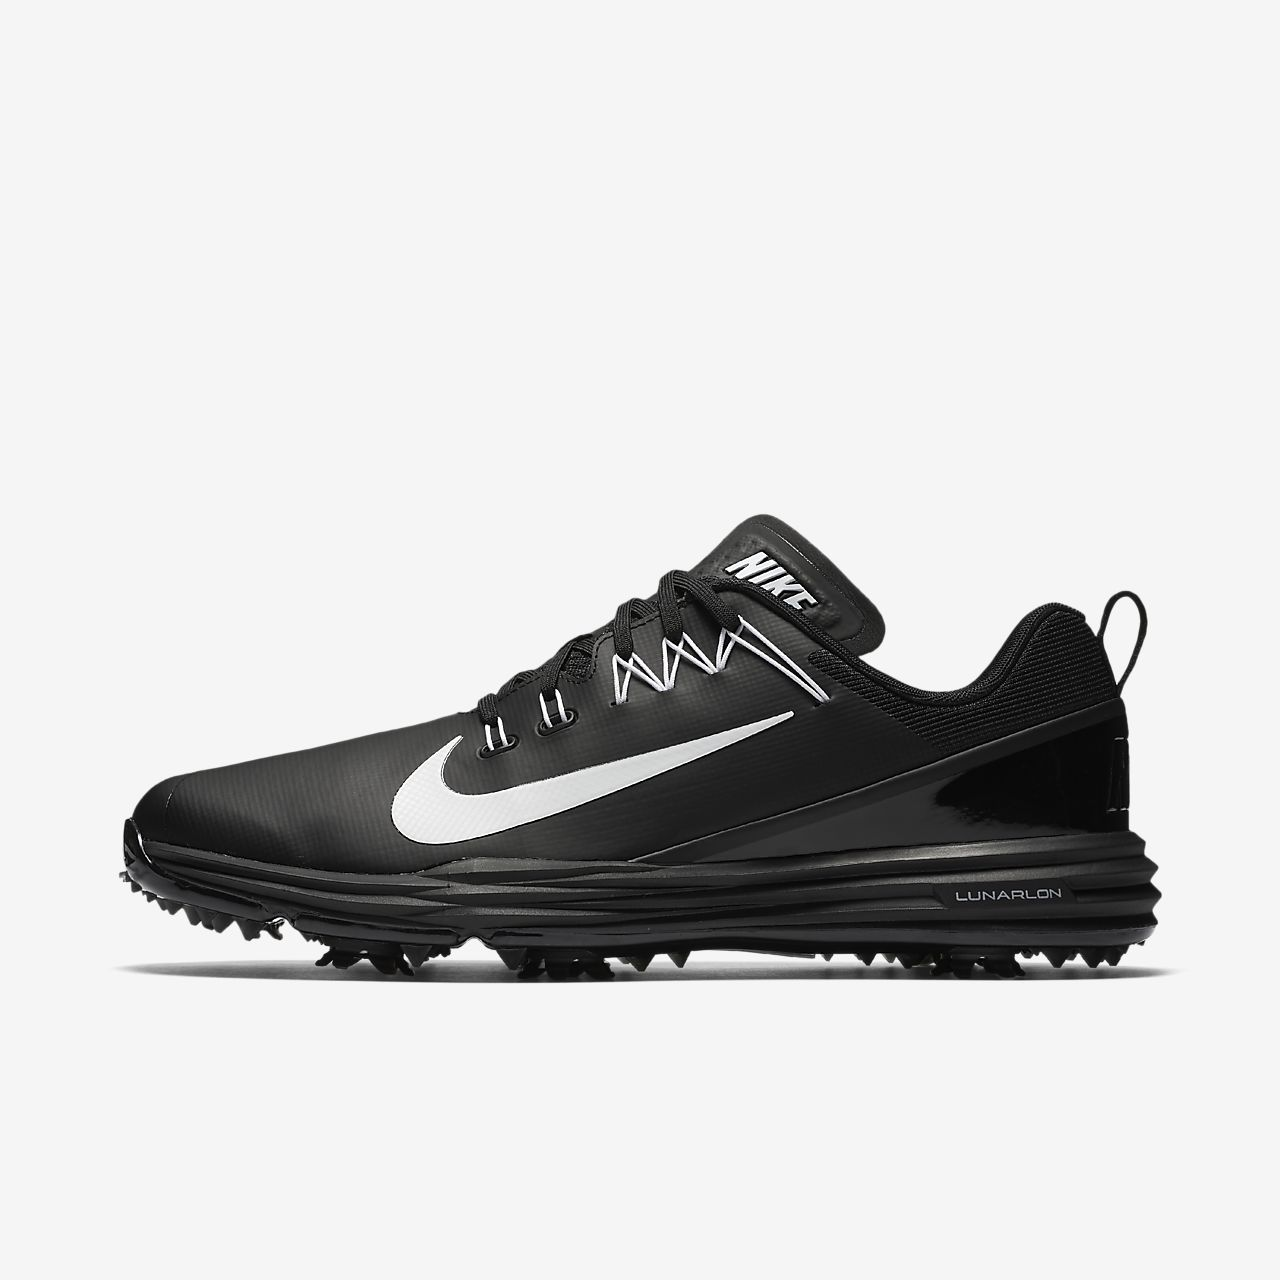 Nike Lunar Command 2 Scarpe da Golf Uomo Nero Black/White 47.5 EU